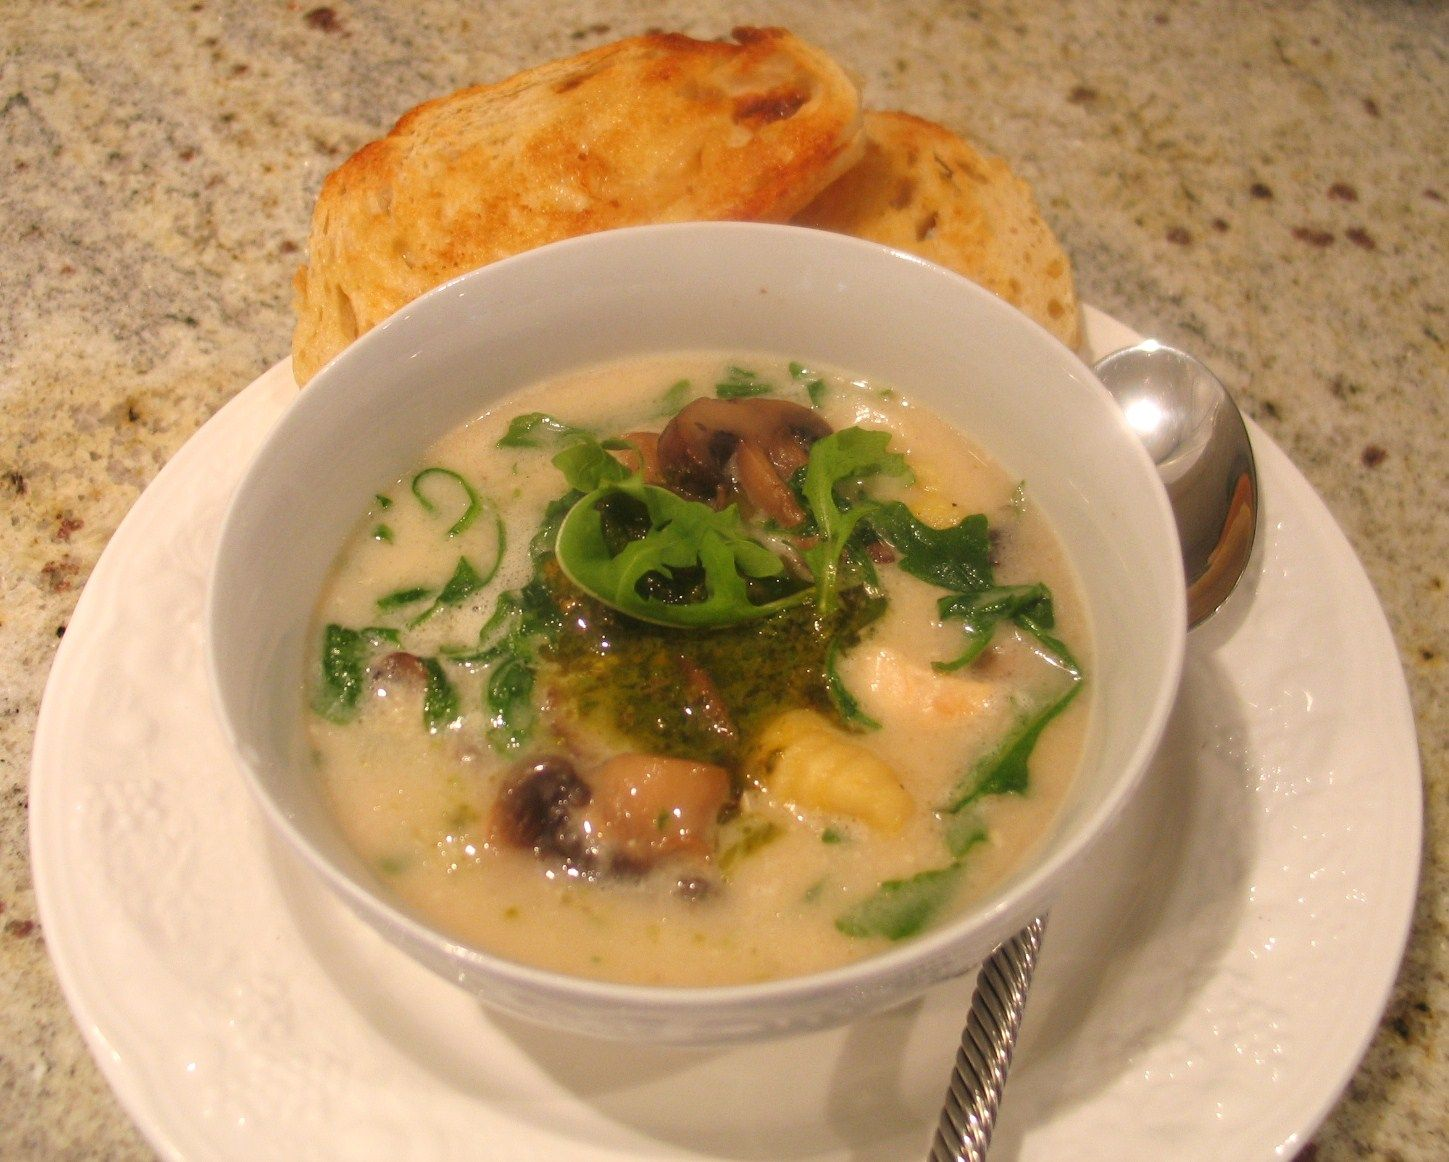 Creamy Chicken and Mushroom soup with Arugula and Gnocchi topped with a bit of Pesto